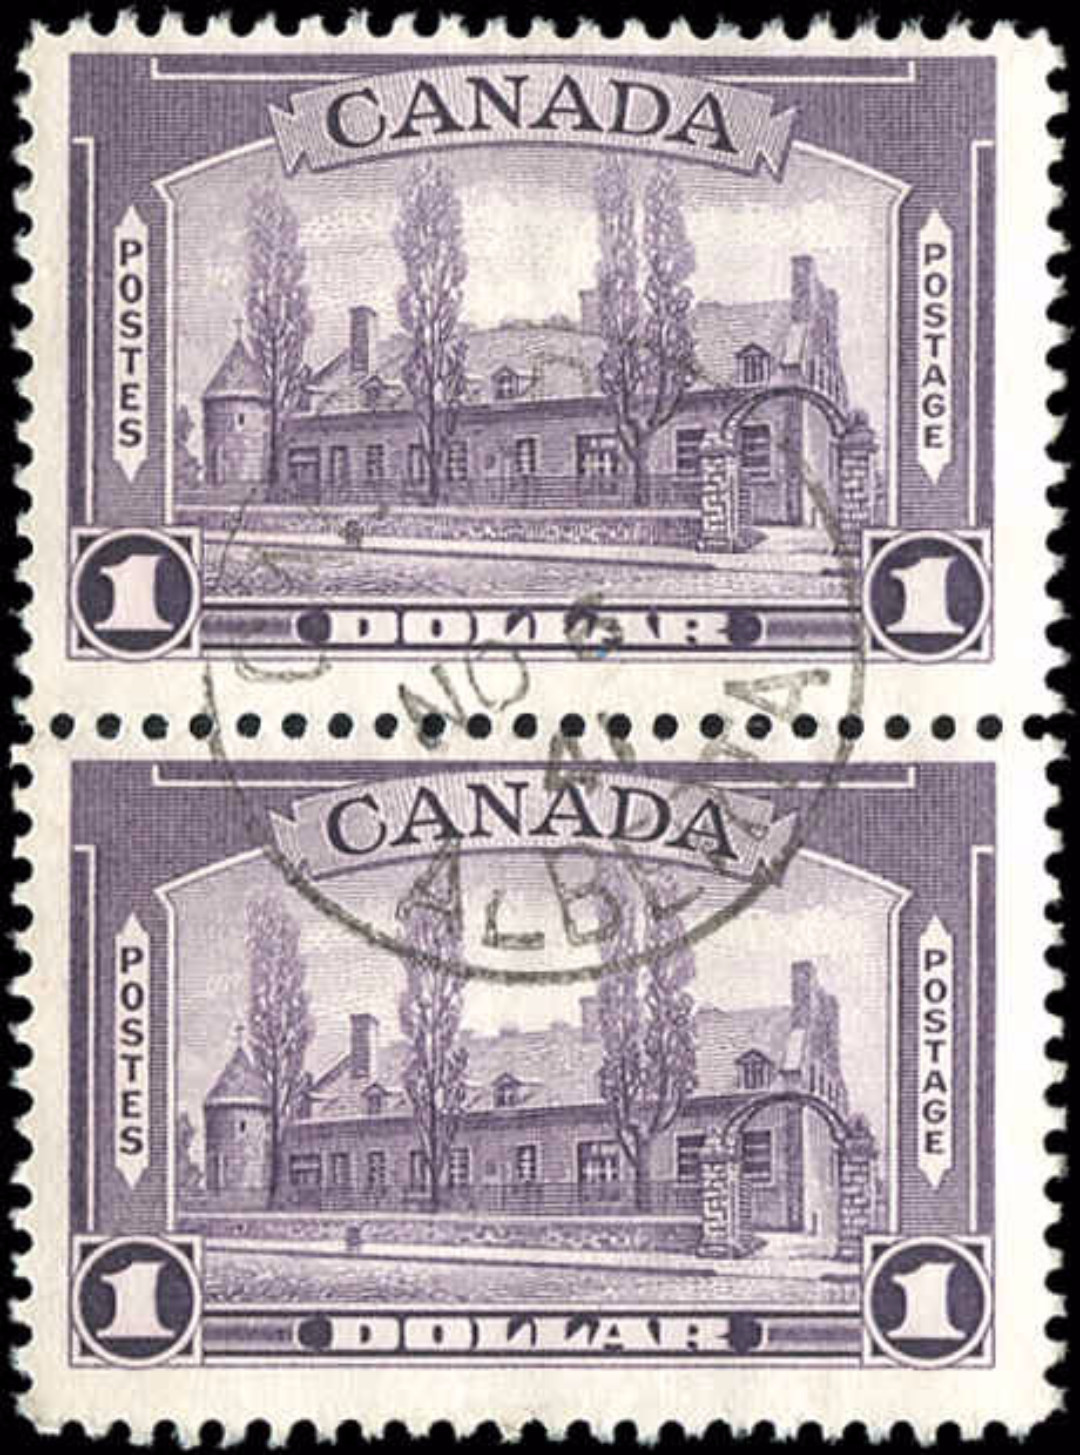 Canada #245, 1938 Pictorial Issue, F-VF, Used